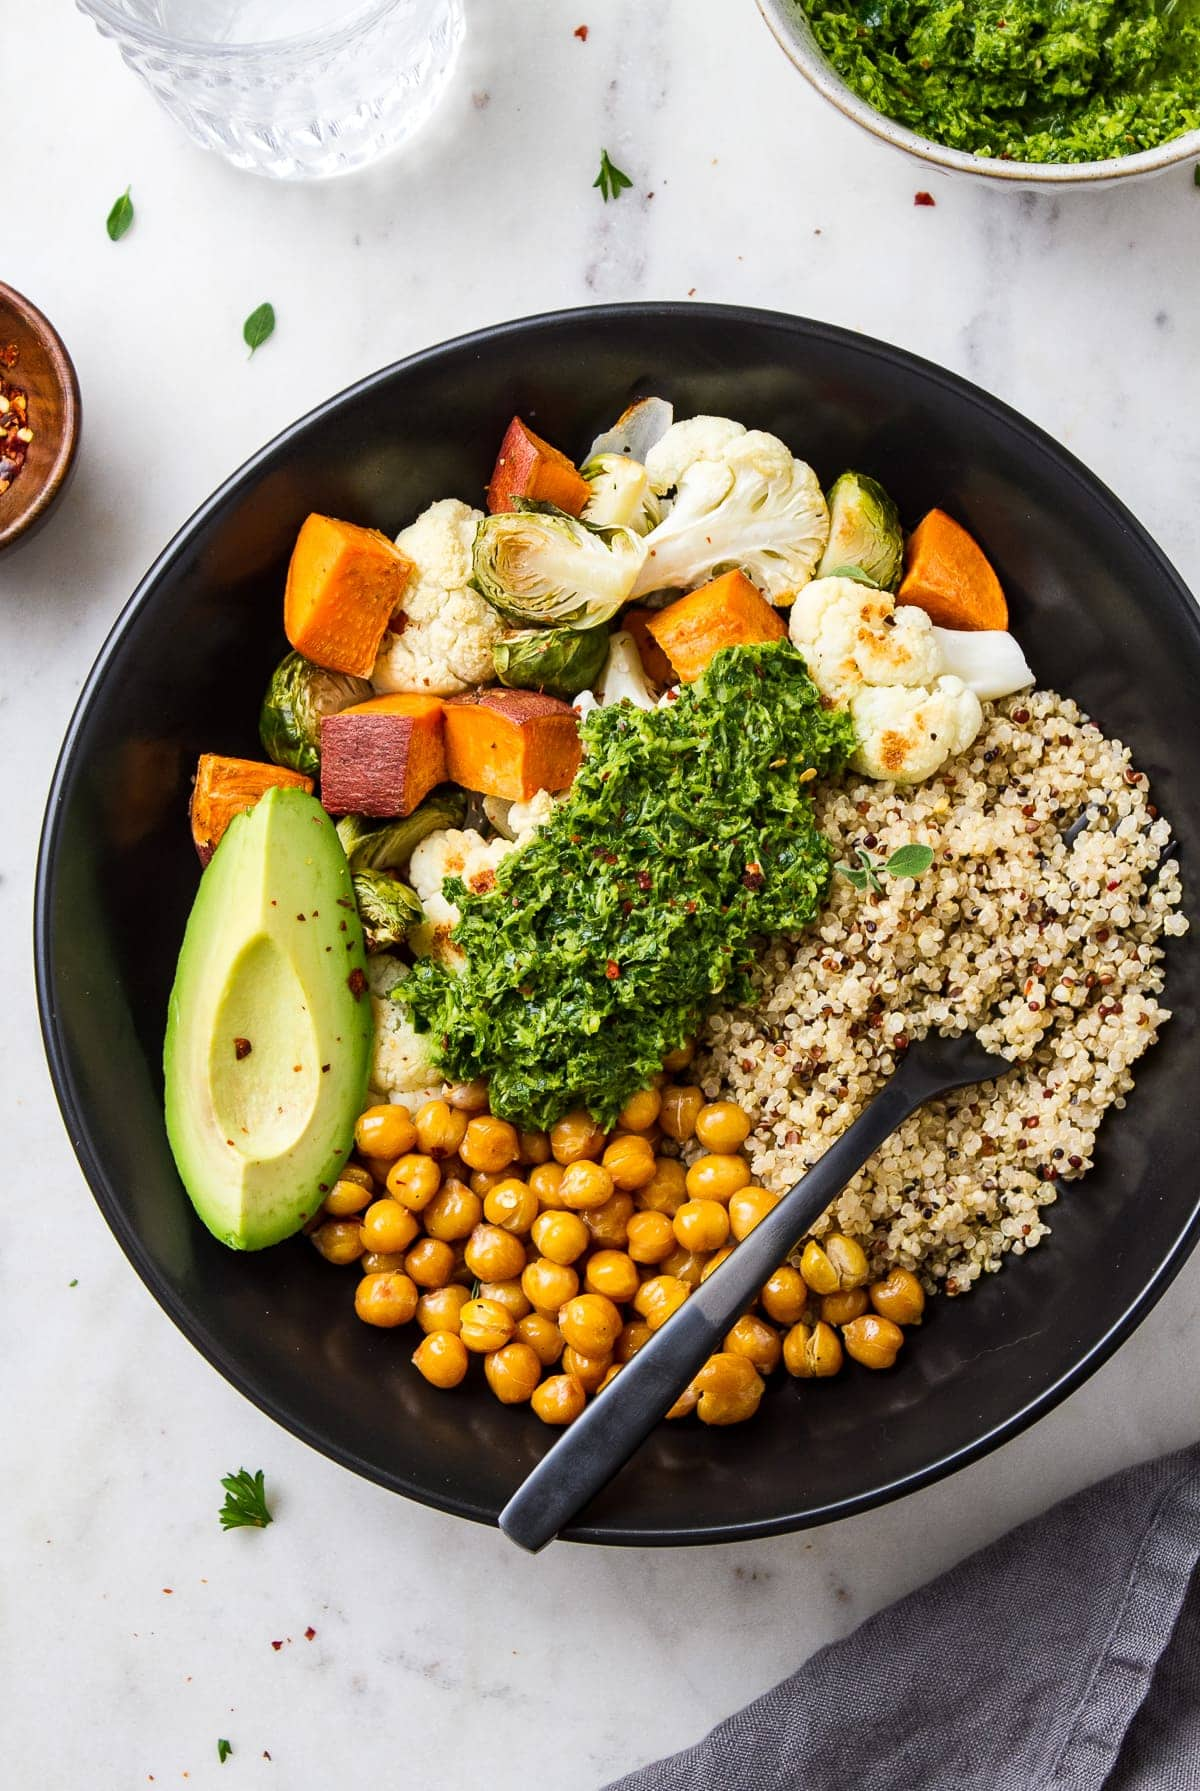 top down view of a black bowl with roasted veggies, chickpeas quinoa and chimichurri making a chimichurri nourish bowl.